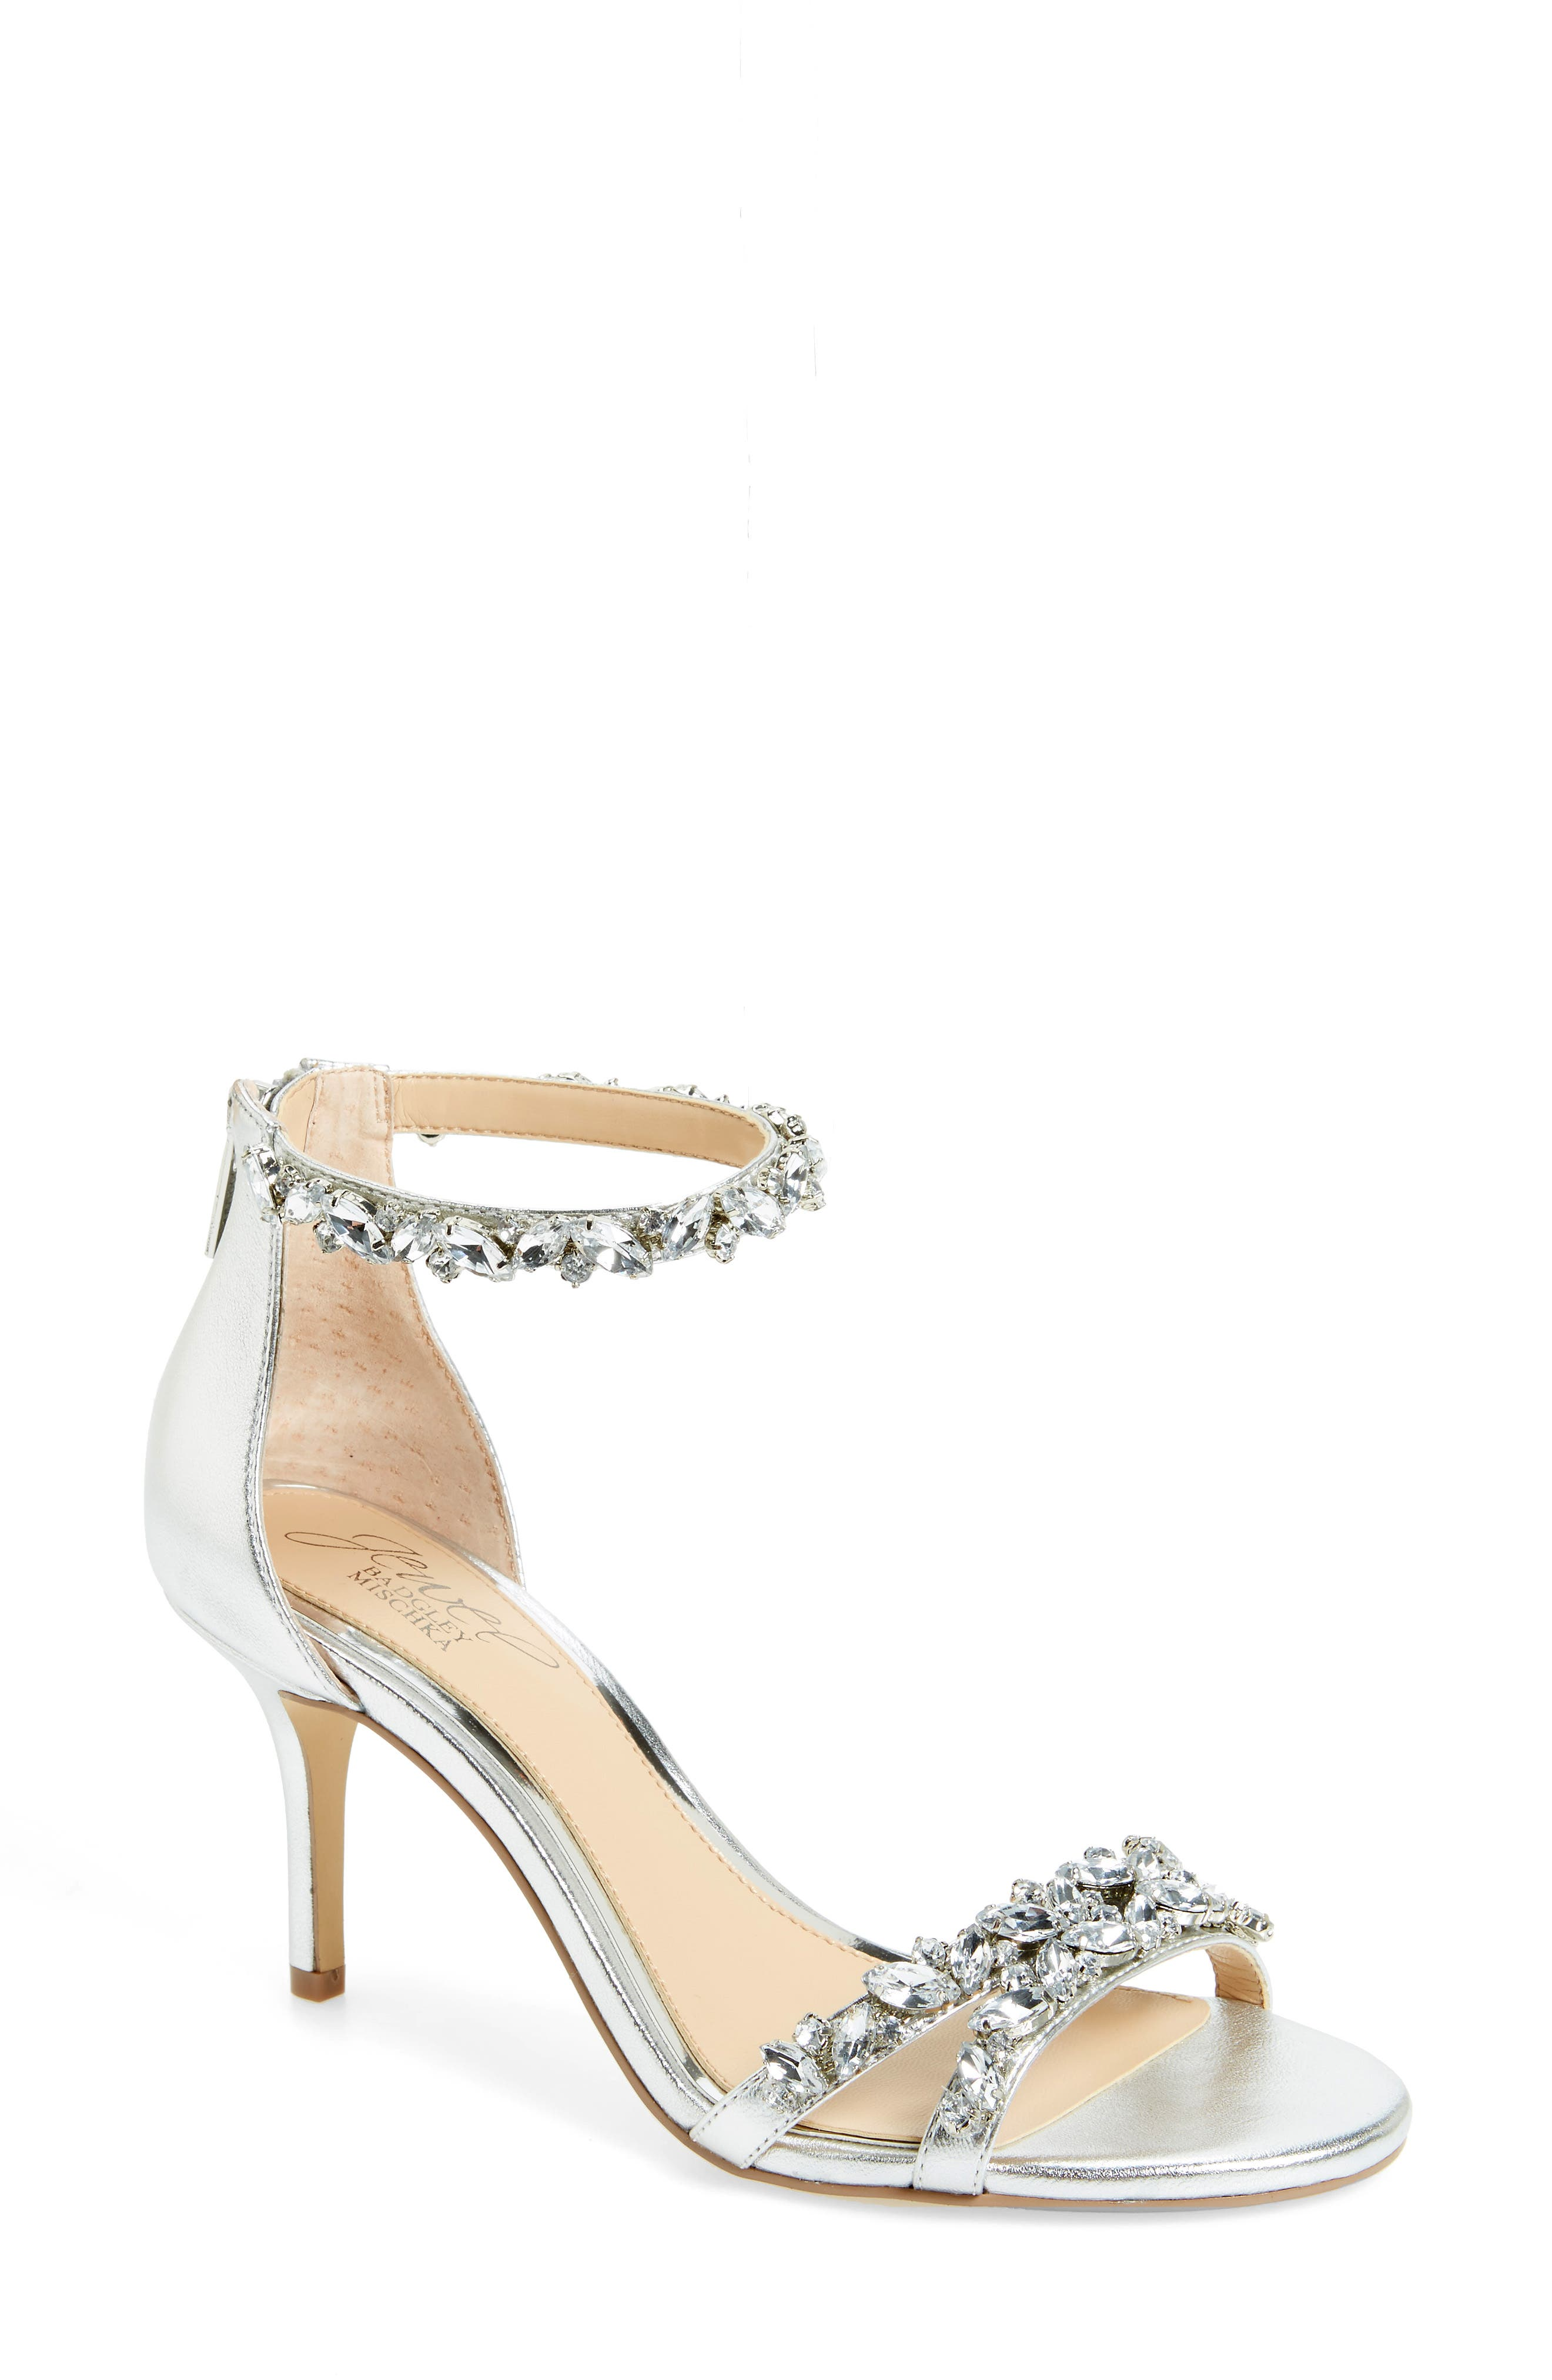 Main Image - Jewel Badgley Mischka Caroline Embellished Sandal (Women)